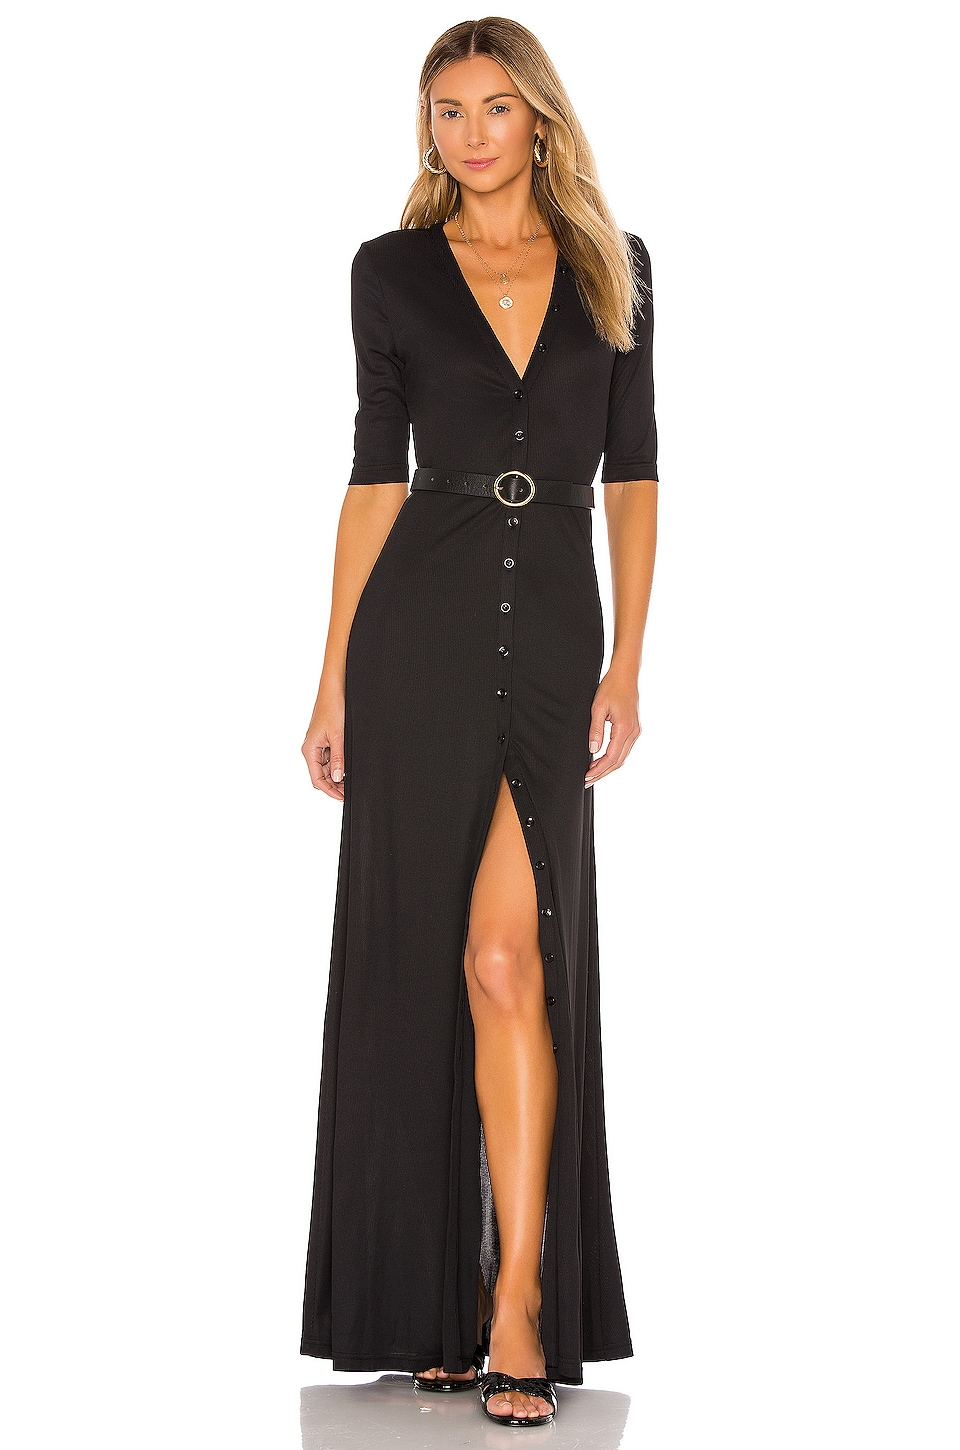 The Esperanza Maxi Dress             L'Academie                                                                                                       CA$ 226.98 26